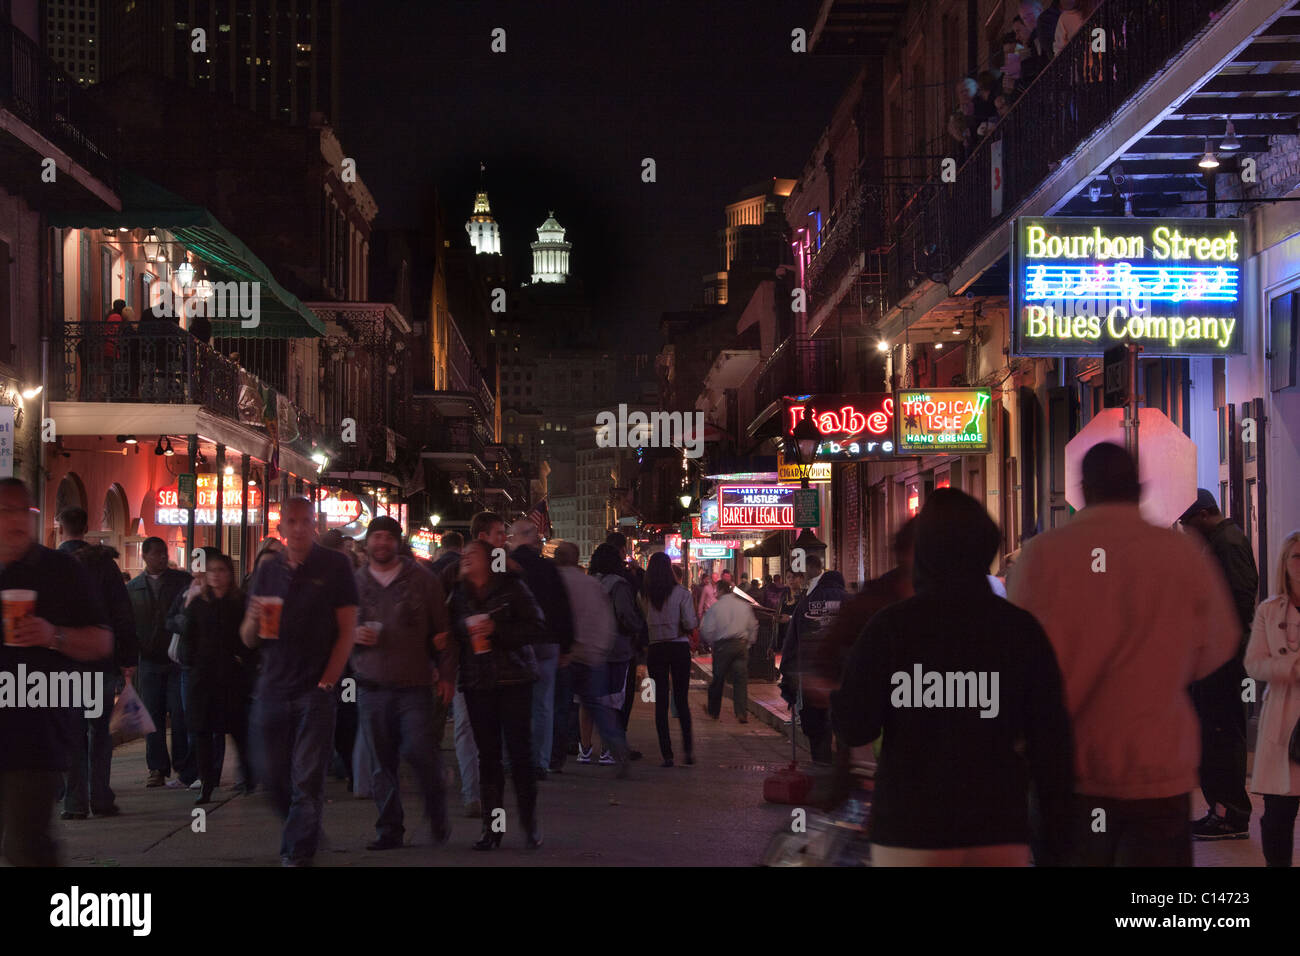 People drinking and walking along Bourbon Street in New Orleans with neon signs - Stock Image